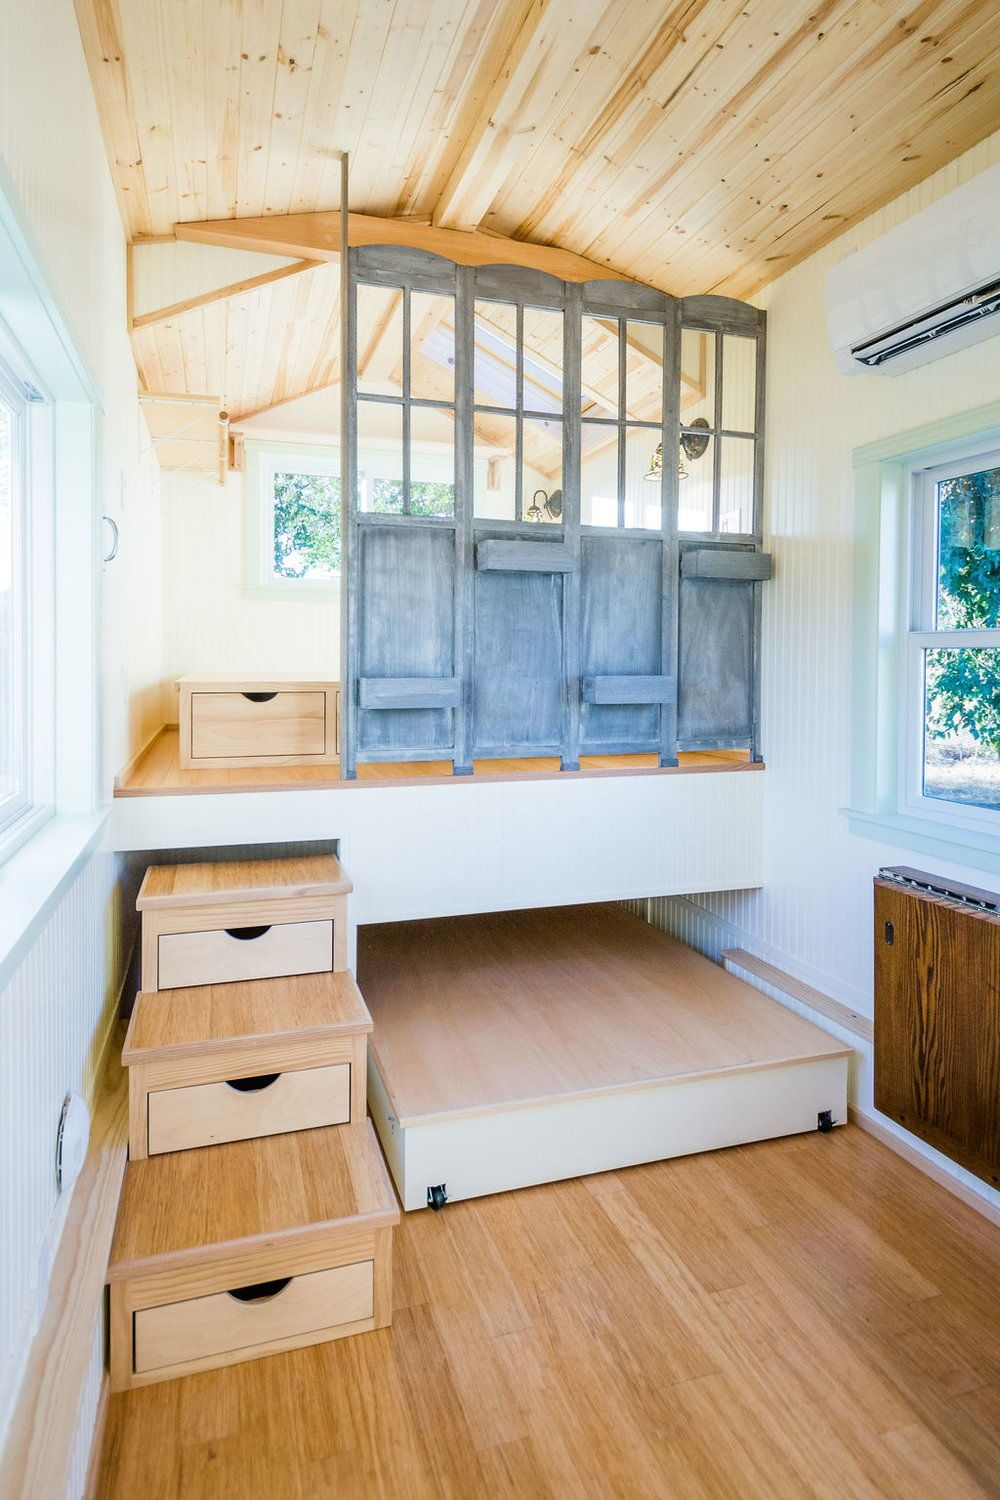 Kerrijo S Tiny House By Mitchcraft Tiny Homes With Images Best